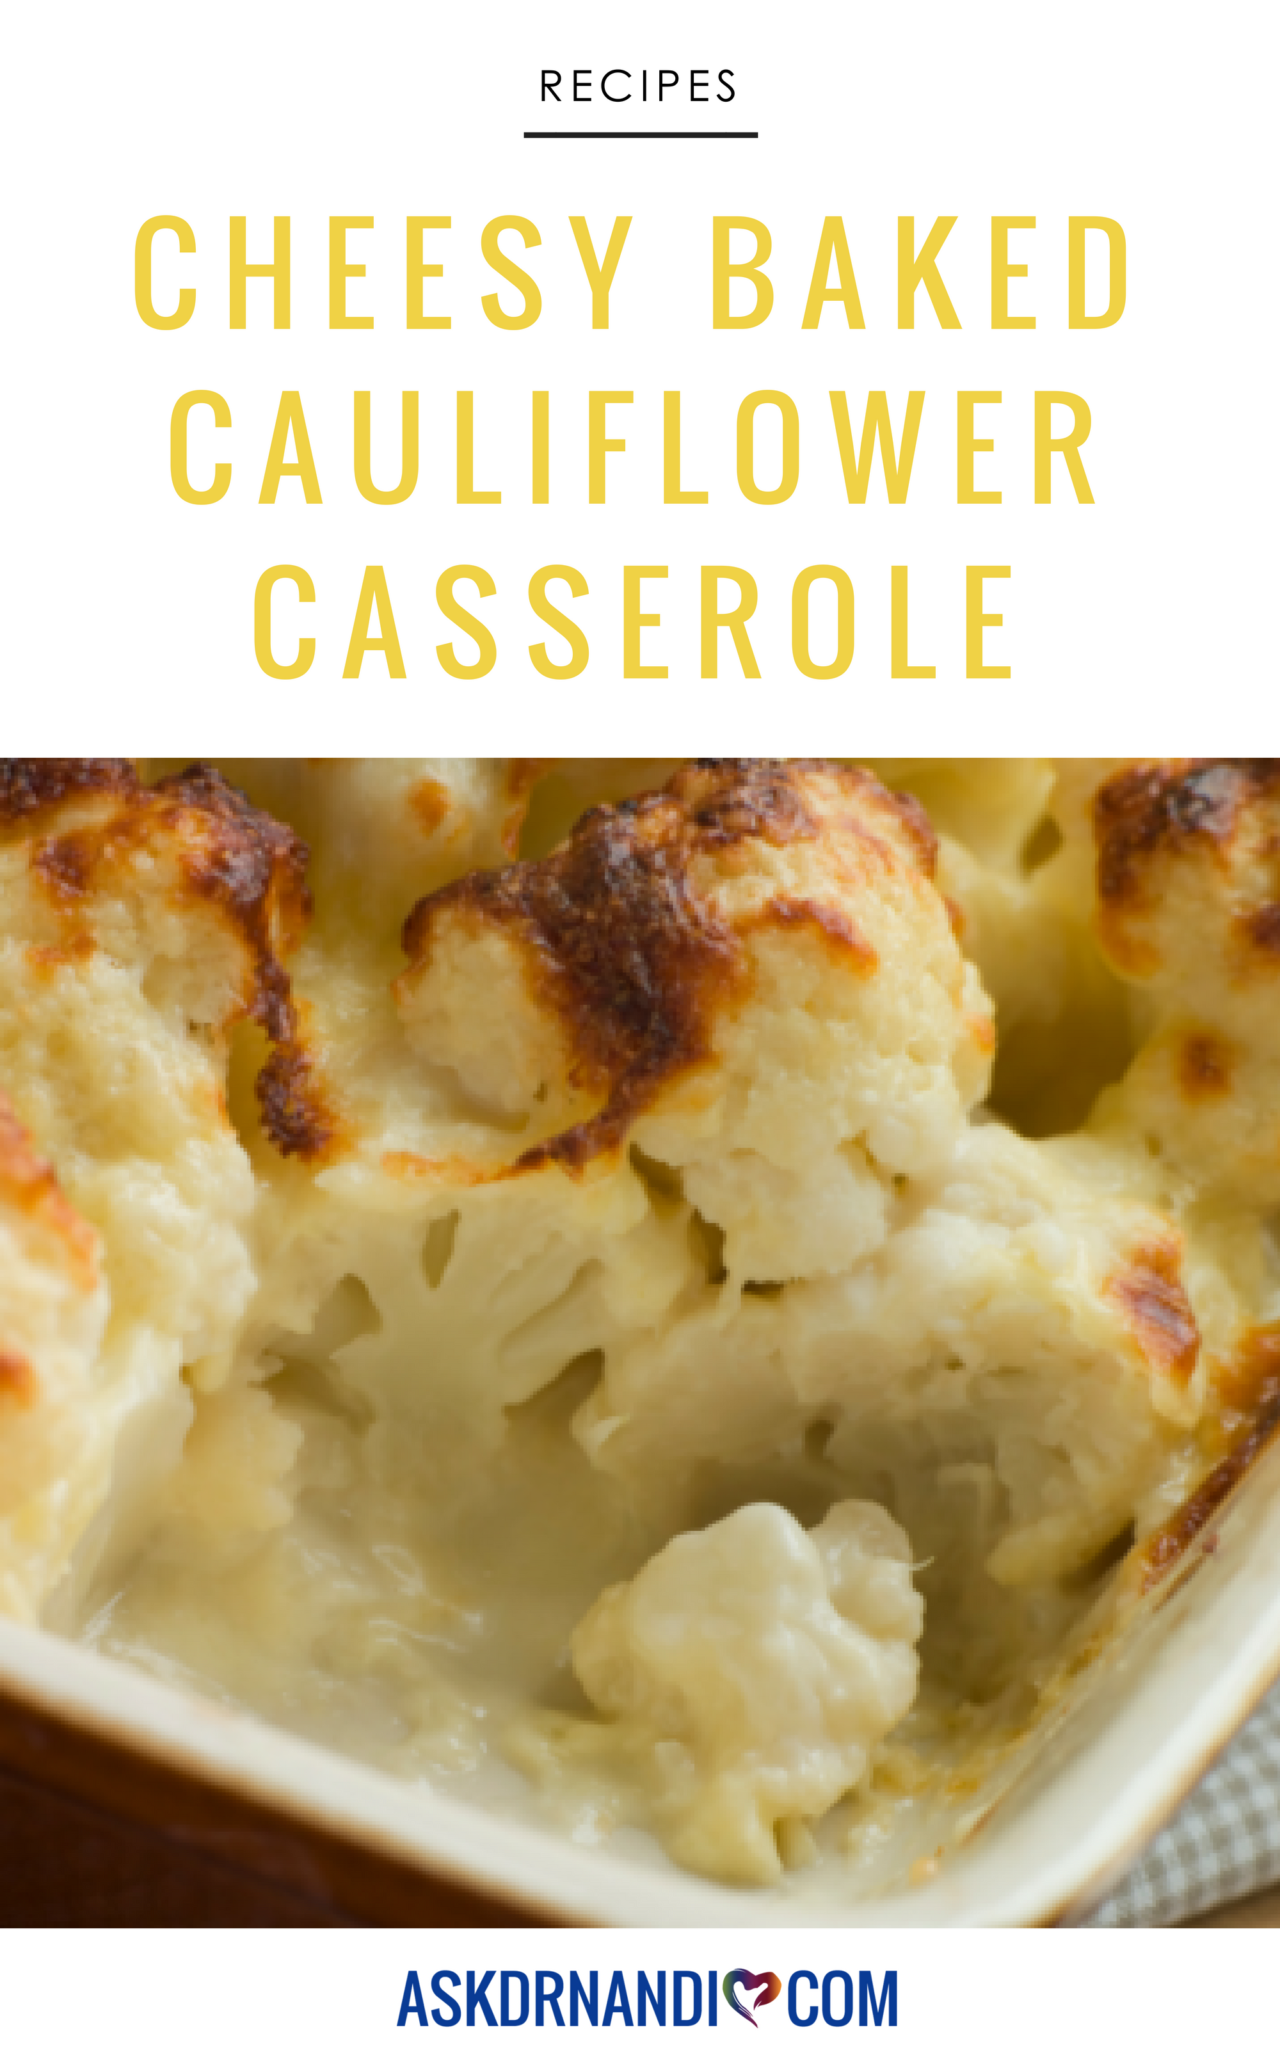 Baked Cauliflower with Cheese Casserole